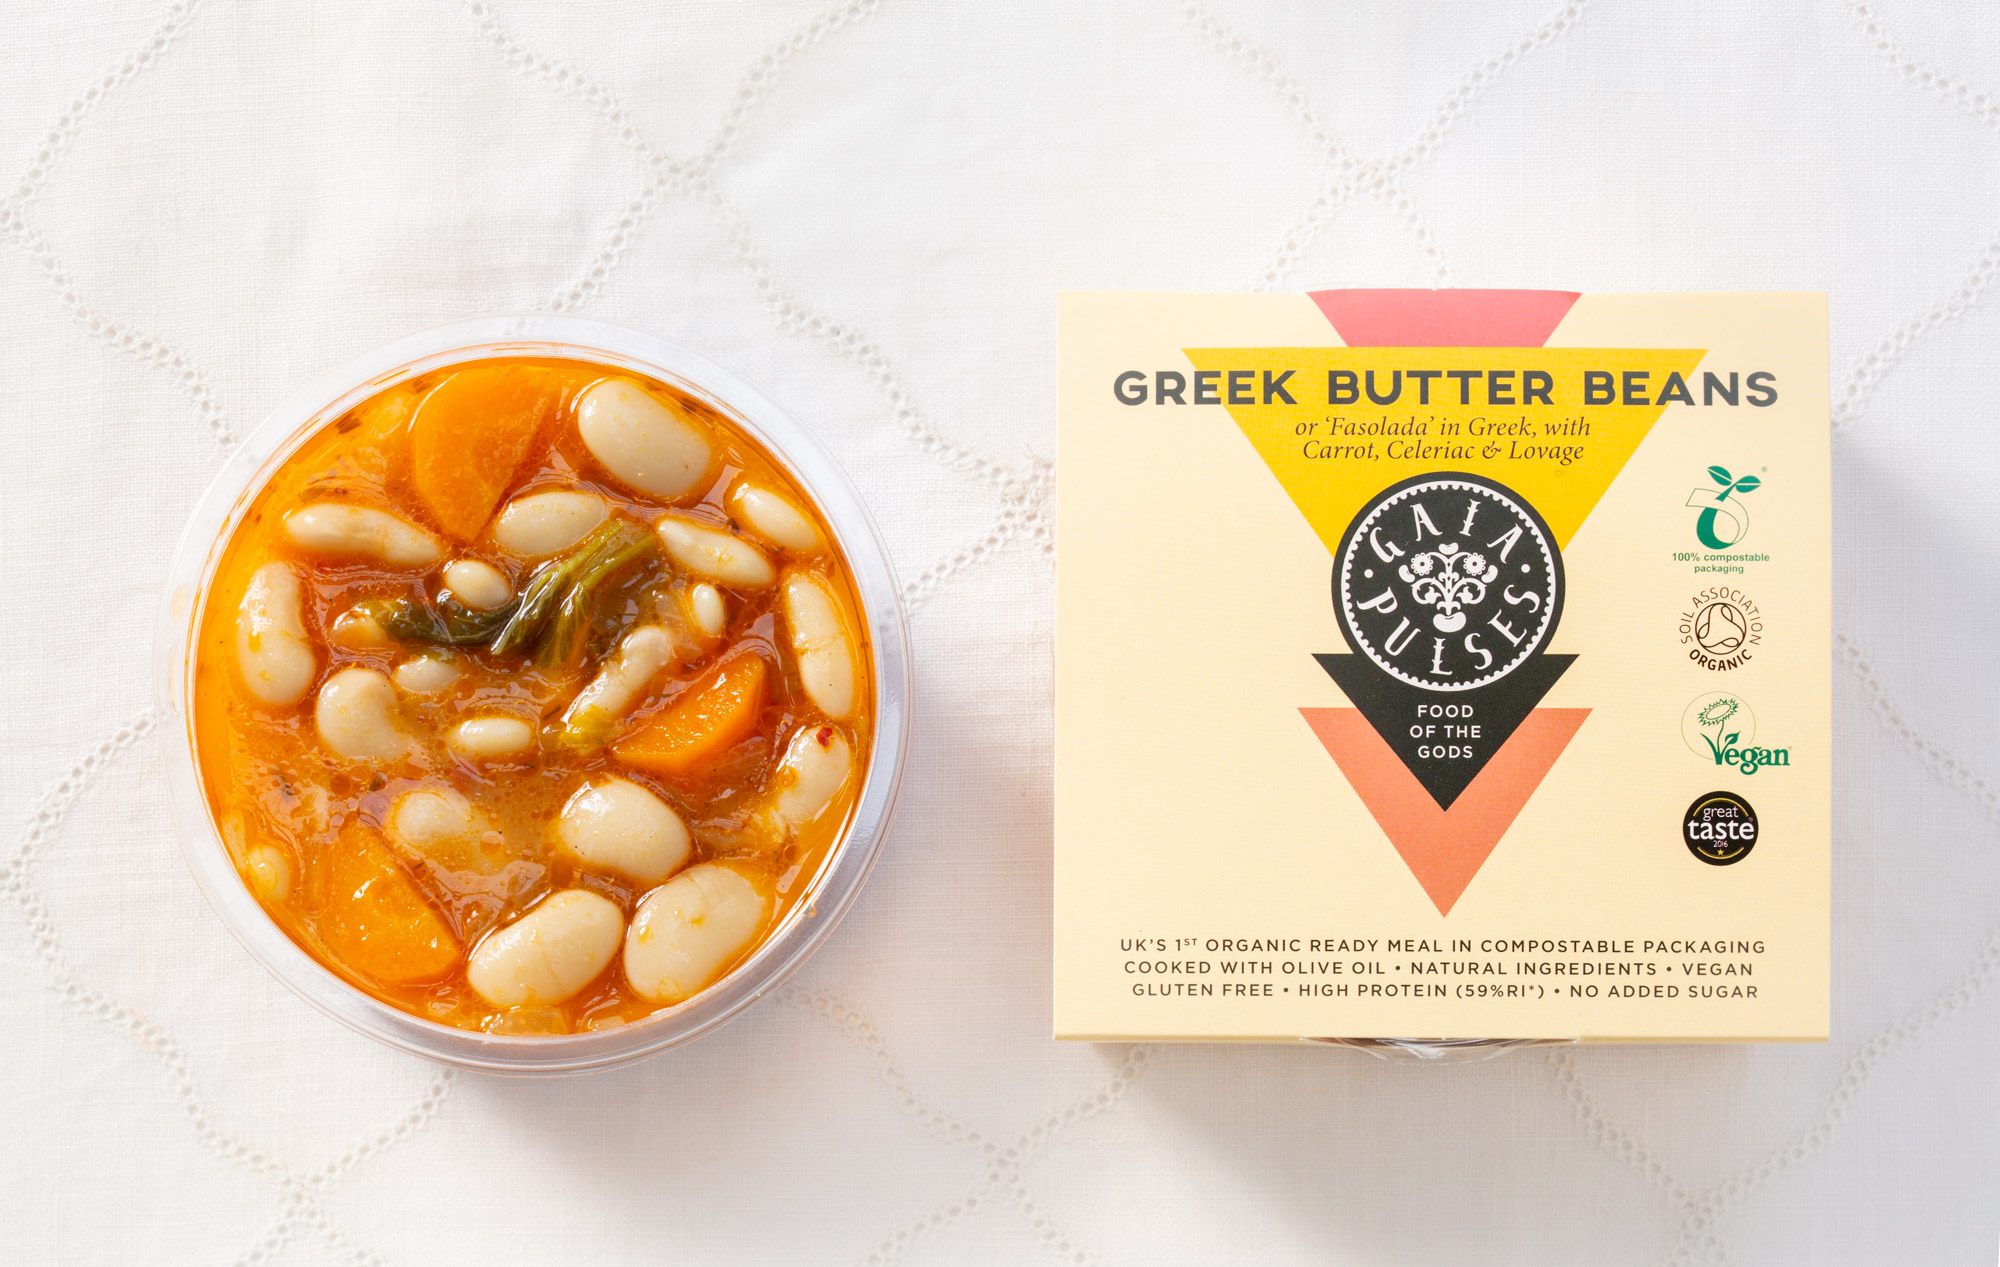 A beautifully made, classic Greek 'Fasolada' with small and sweet, top quality Butter Beans from 'Prespes' and the unique aroma of the rare, UK grown organic Lovage - Celeriac, Tomato, Carrot and Extra Virgin Olive Oil. High on Protein, Folate, B Vitamins and Fibre.